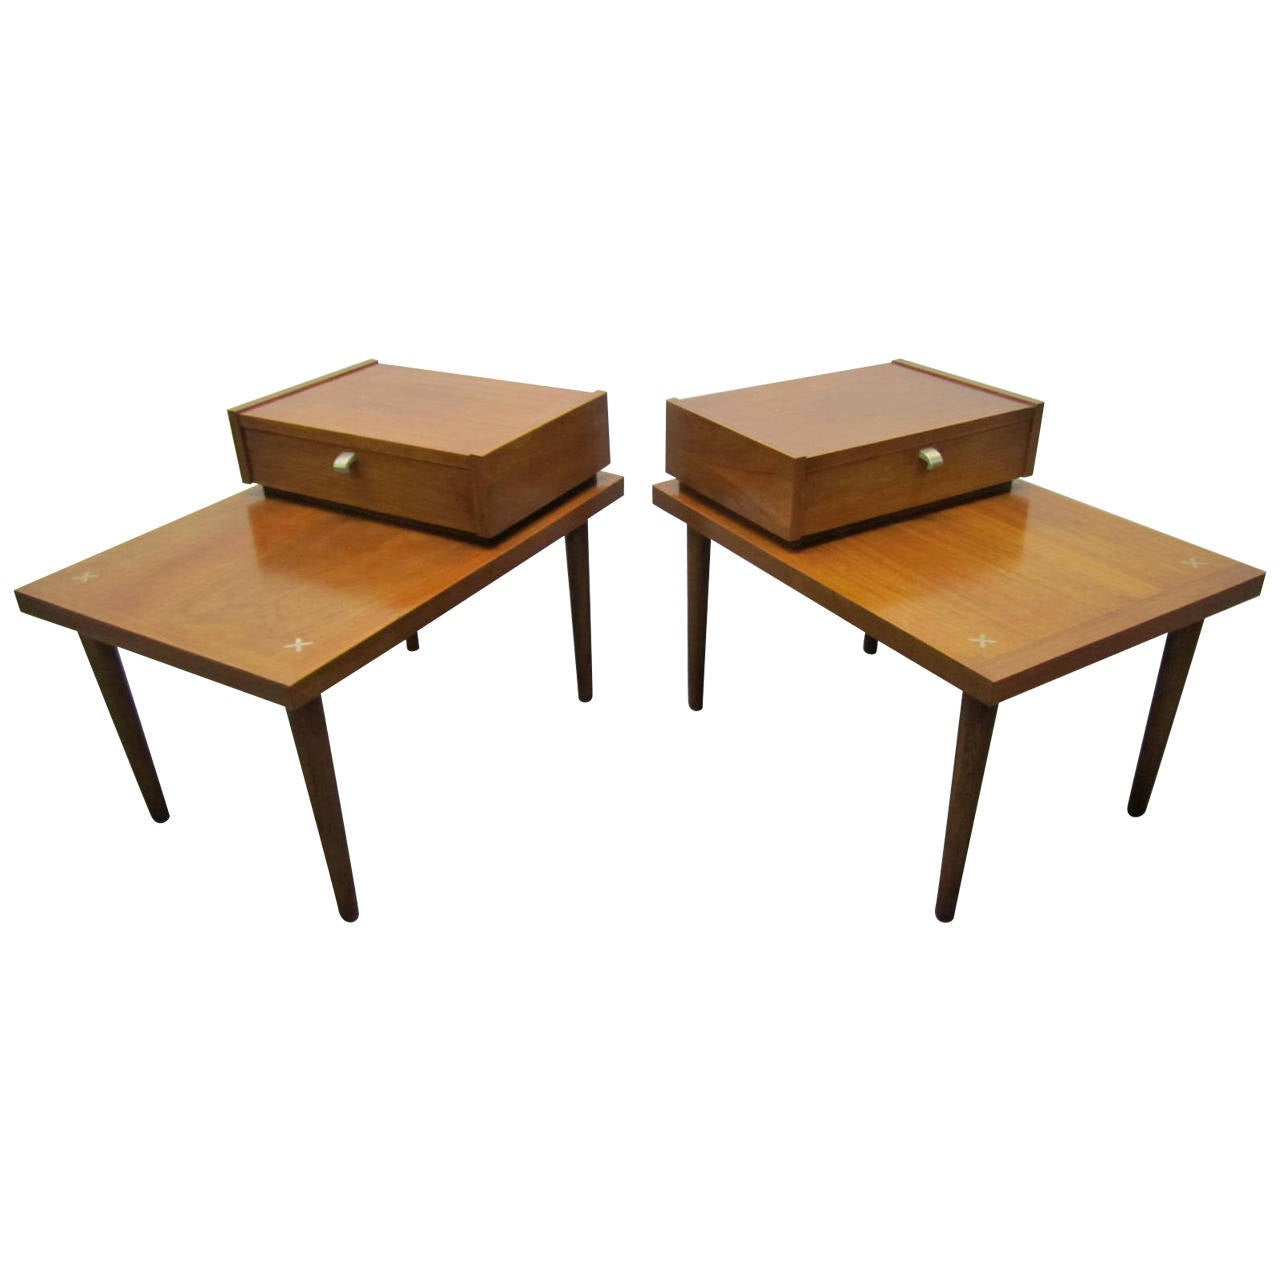 Hilarious Handsome Pair American Sale End Table End End Tables End Tablesfor Sale Handsome Pair American houzz-03 Modern End Tables